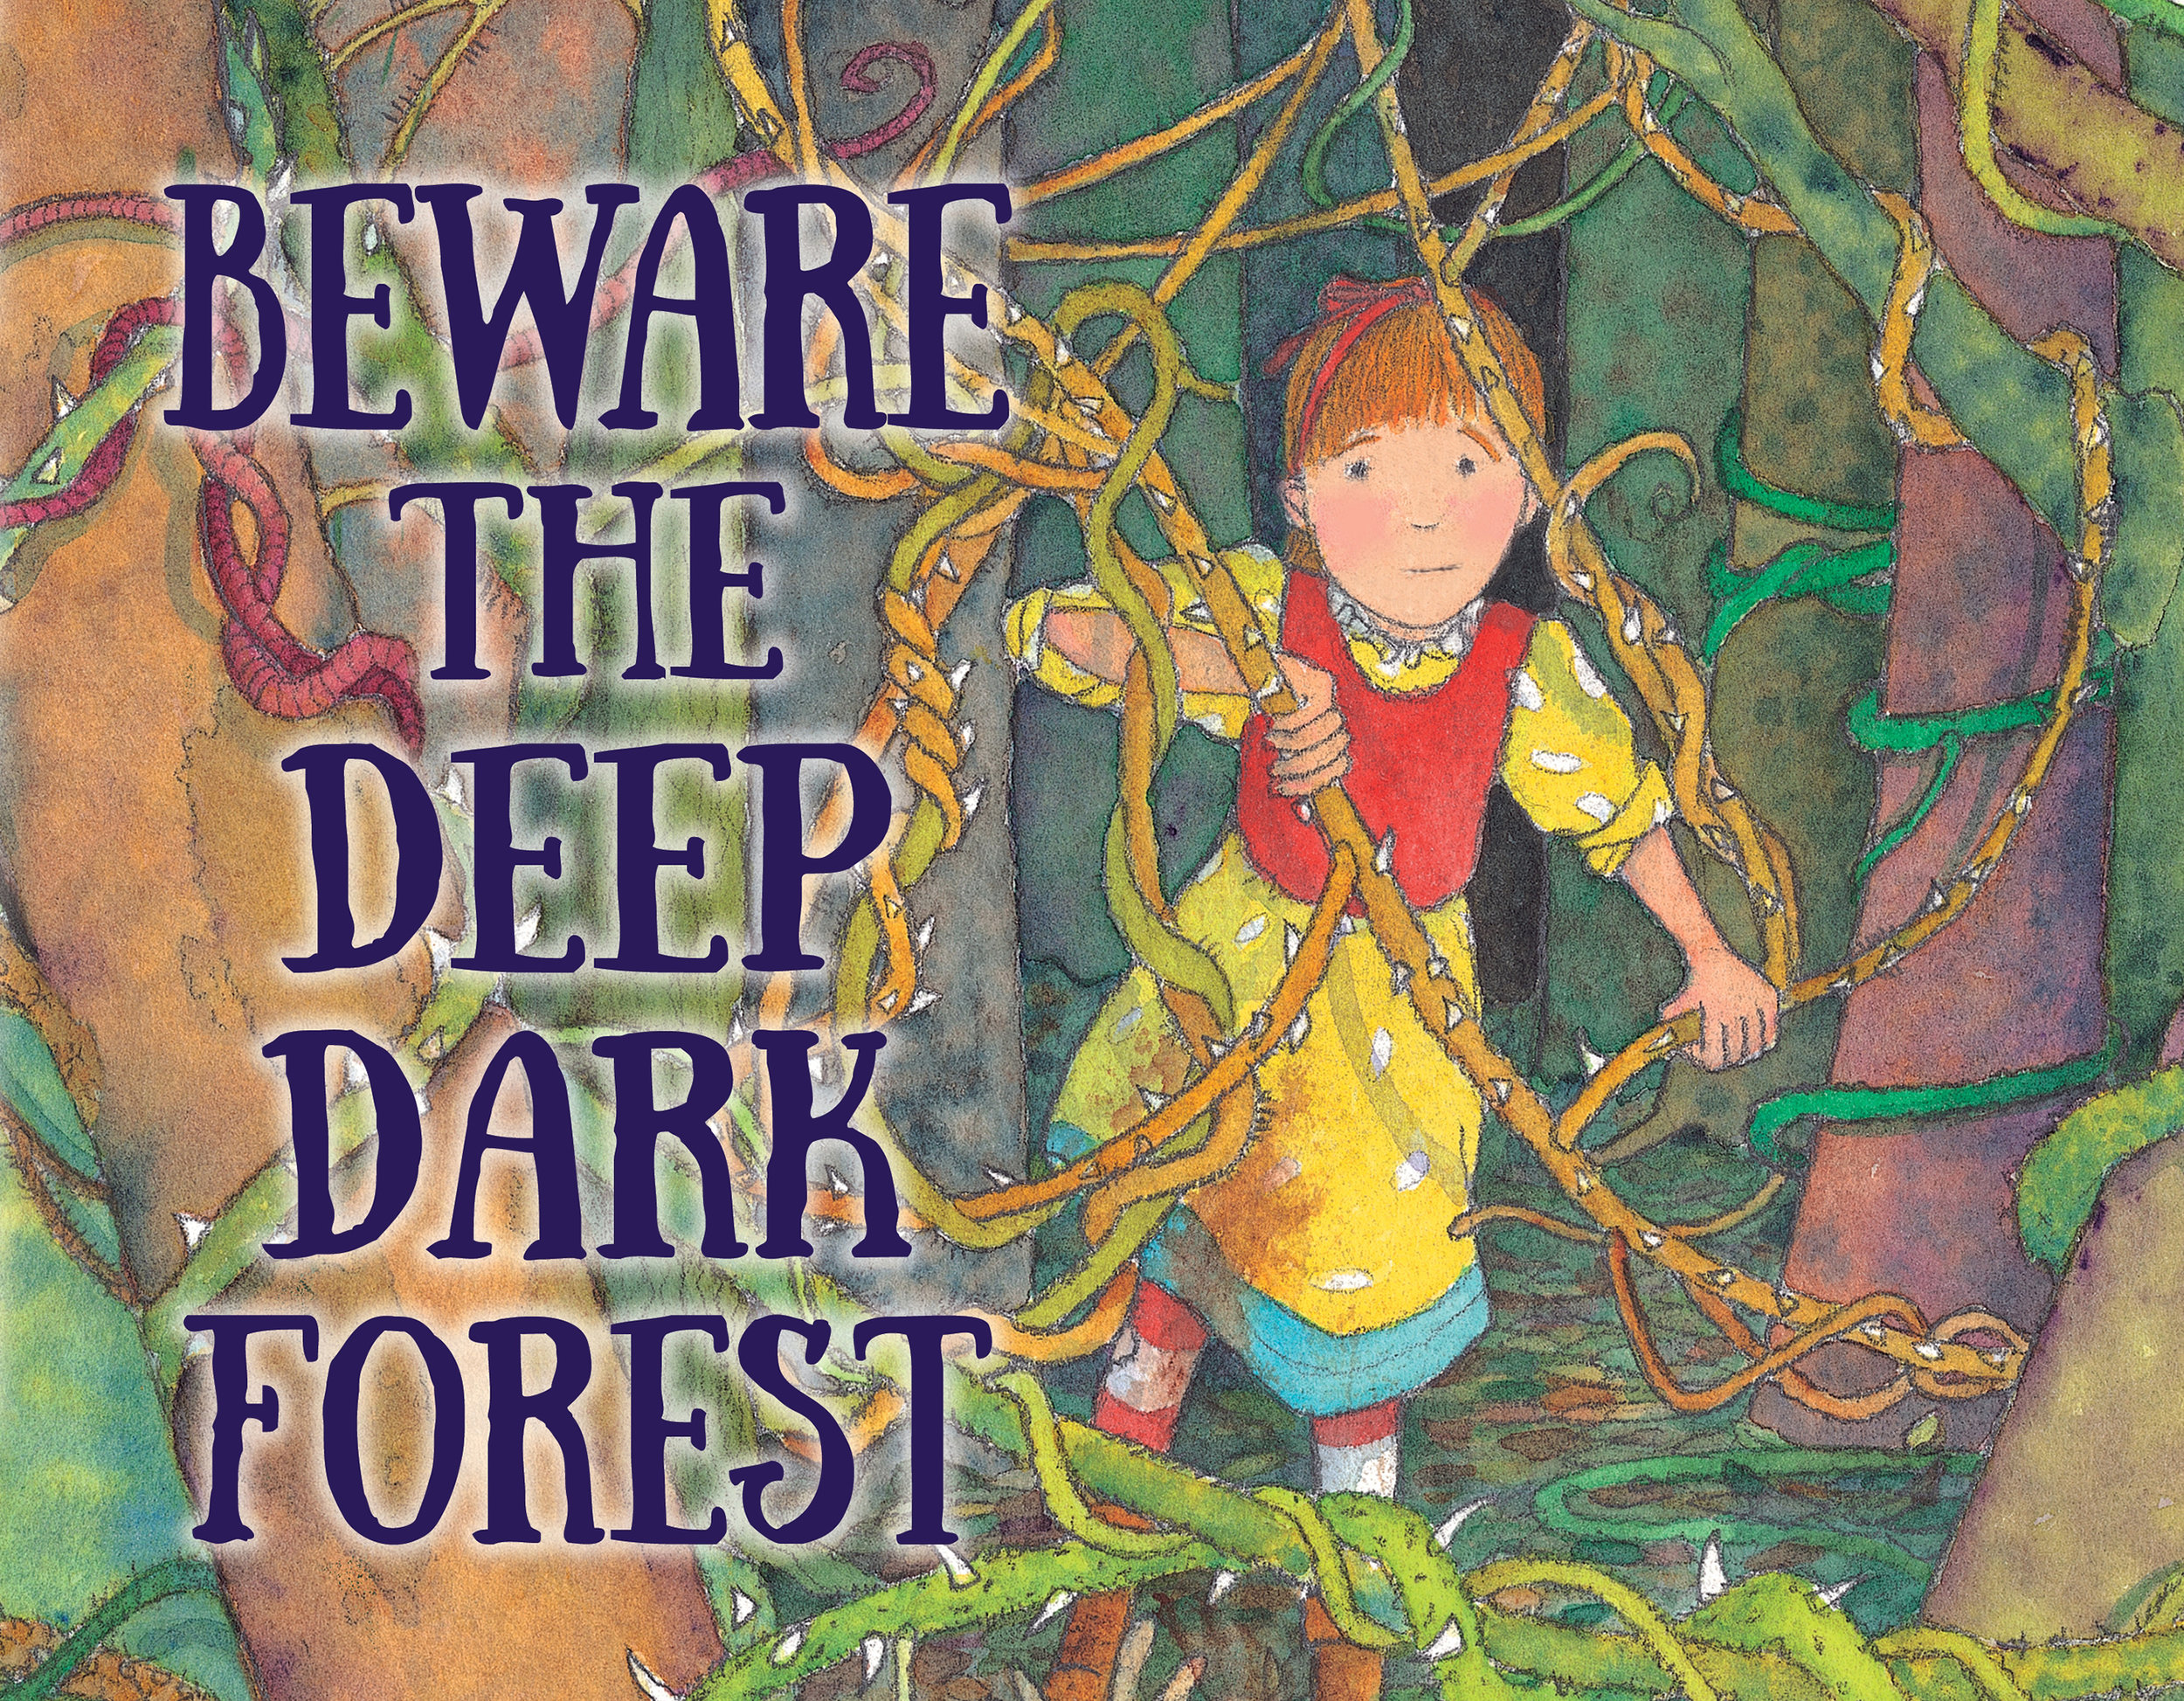 Beware the deep dark forest.jpg